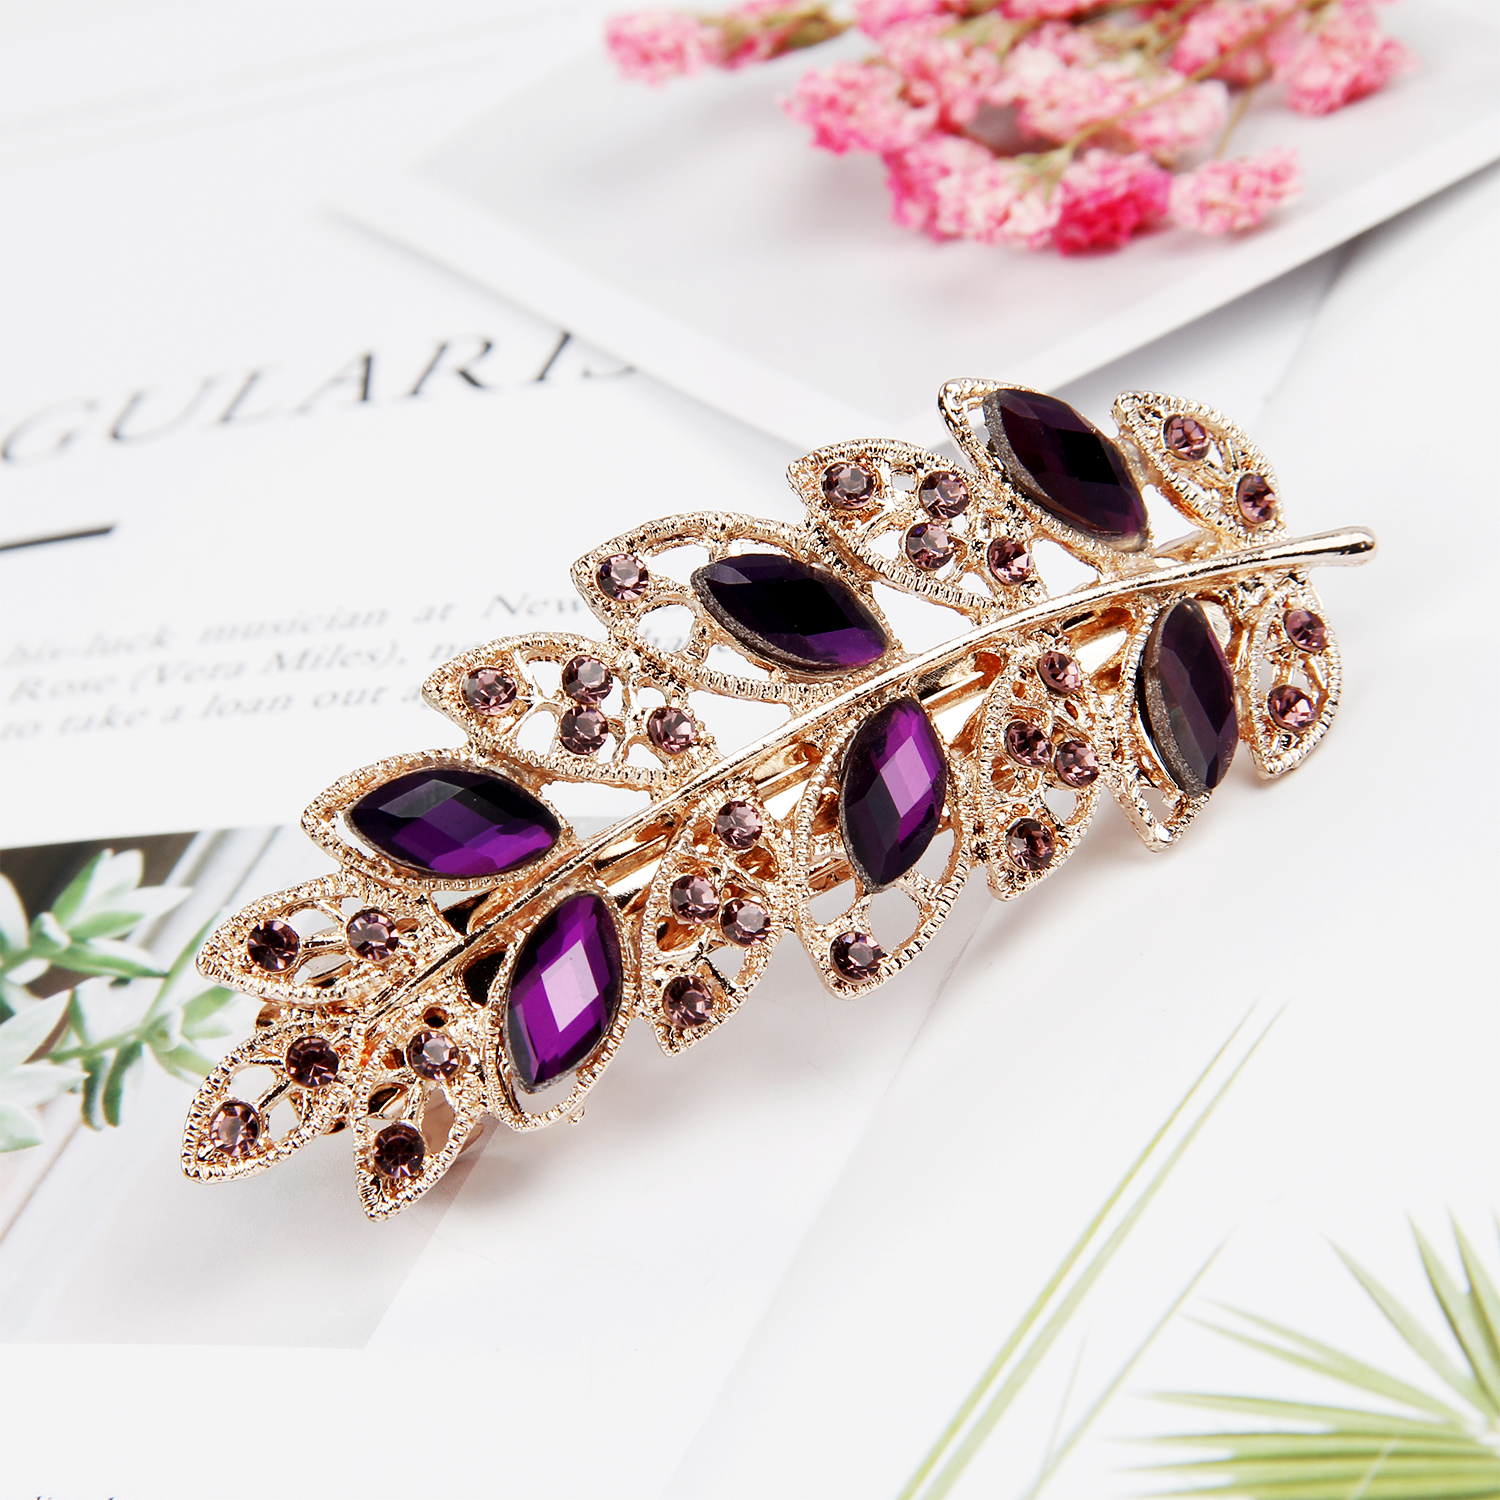 hair clips for women hairclip fashion style Styling Tools Metal Ponytail holder Hairpins BB Hairgrip Girls Hair Accessories